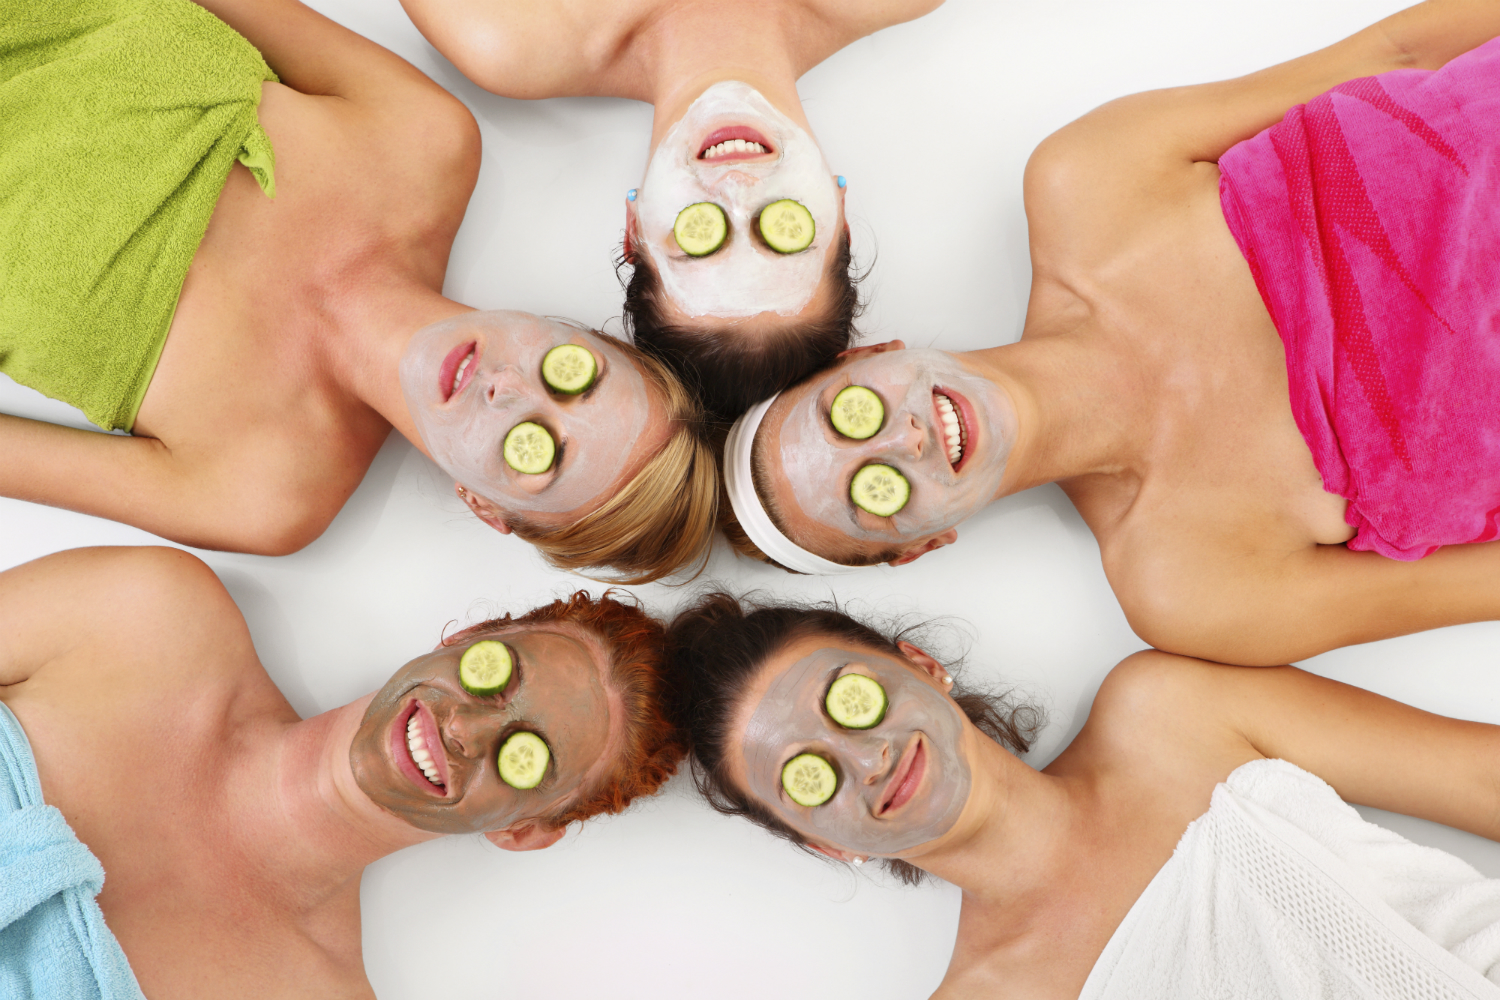 /blog/relationships/tips-great-bachelorette-spa-party/